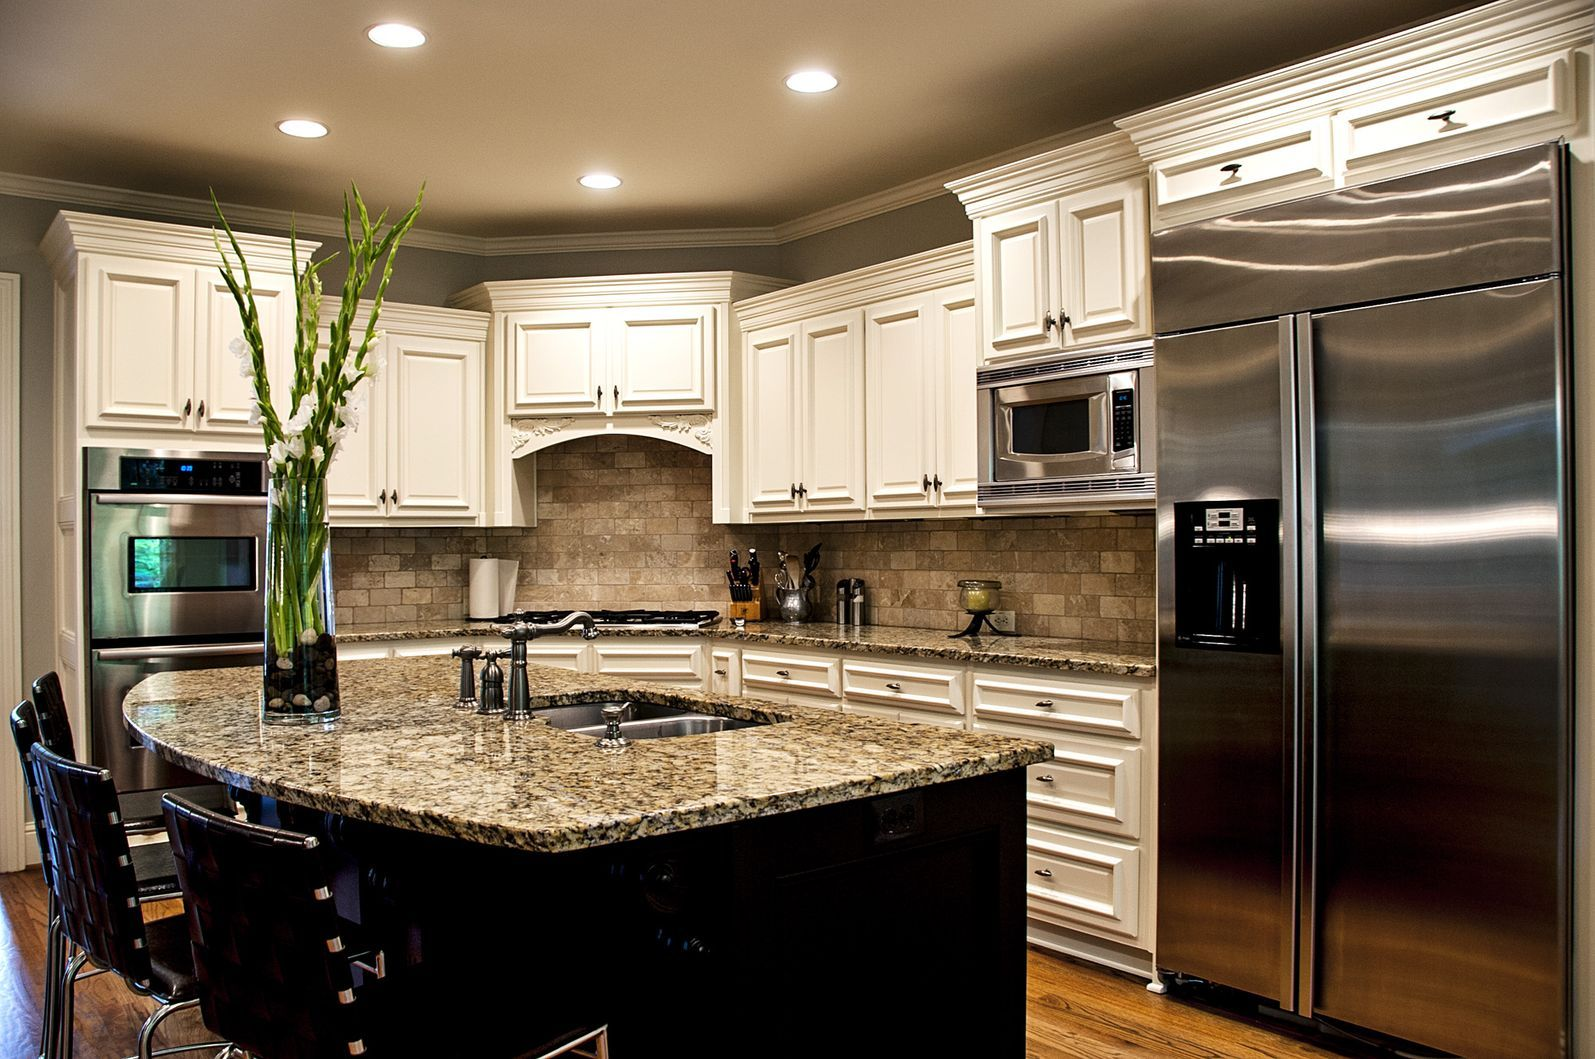 Contemporary Kitchen Images By 2 S A Design Wayfair